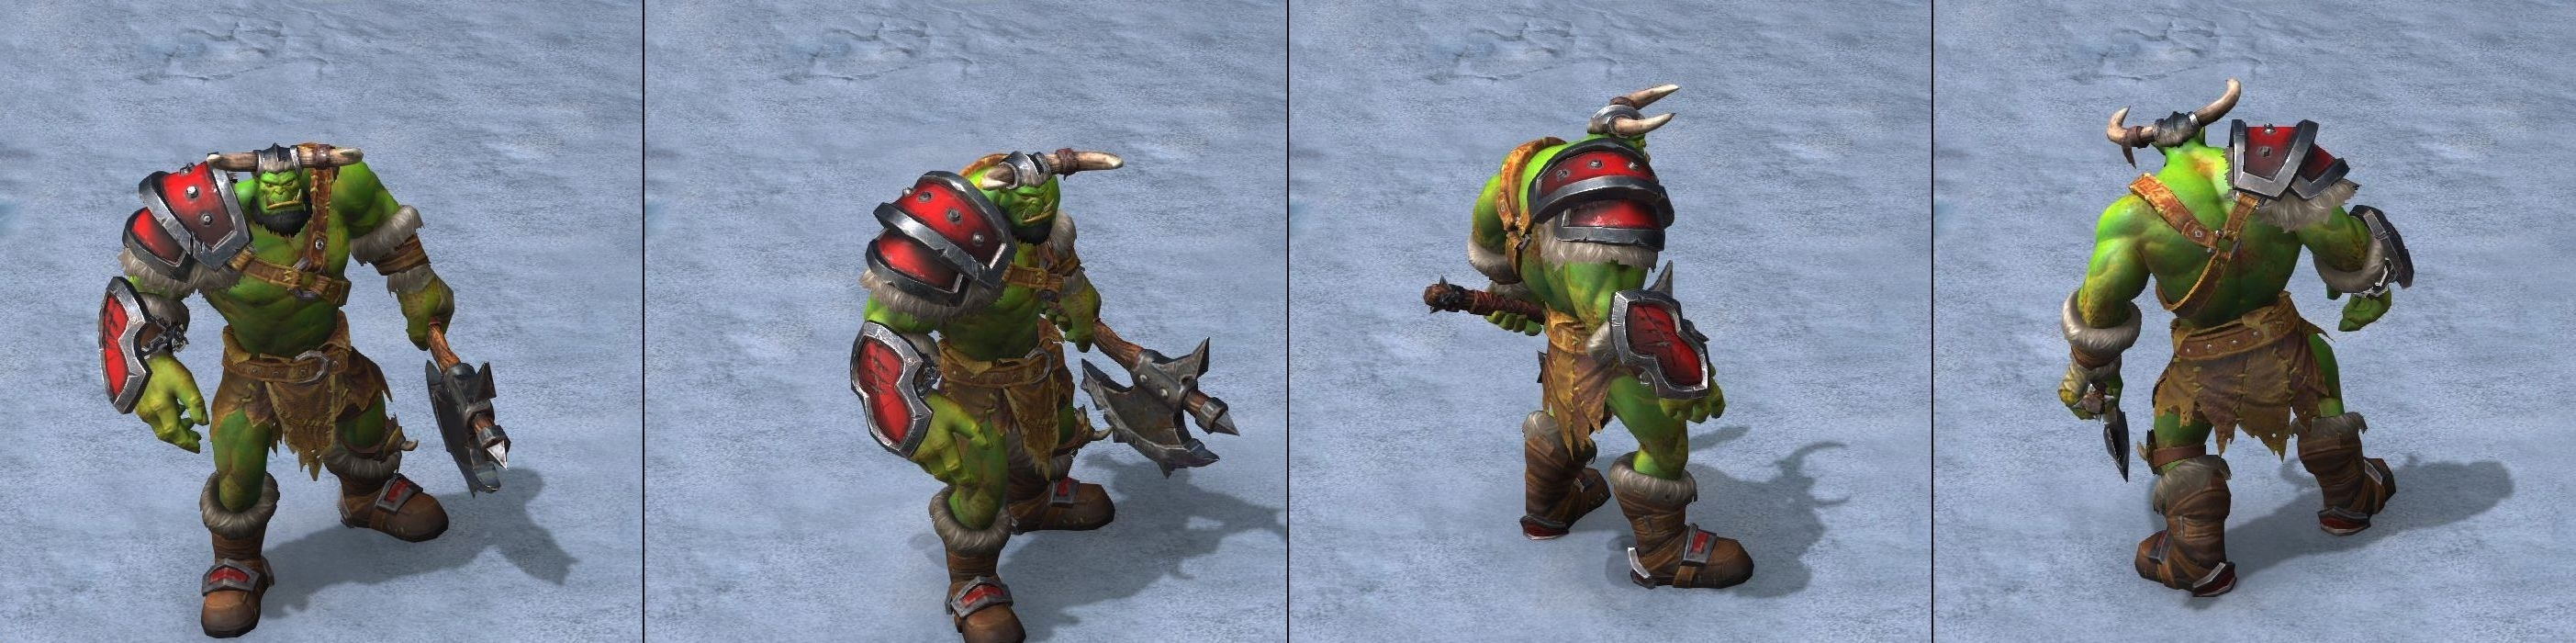 Warcraft 3 Reforged Grunt orc